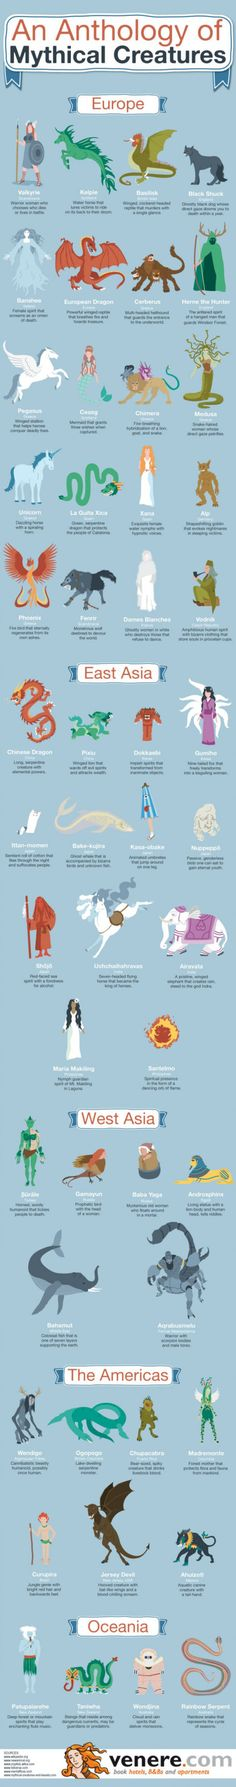 Mythical Creatures from around the world.